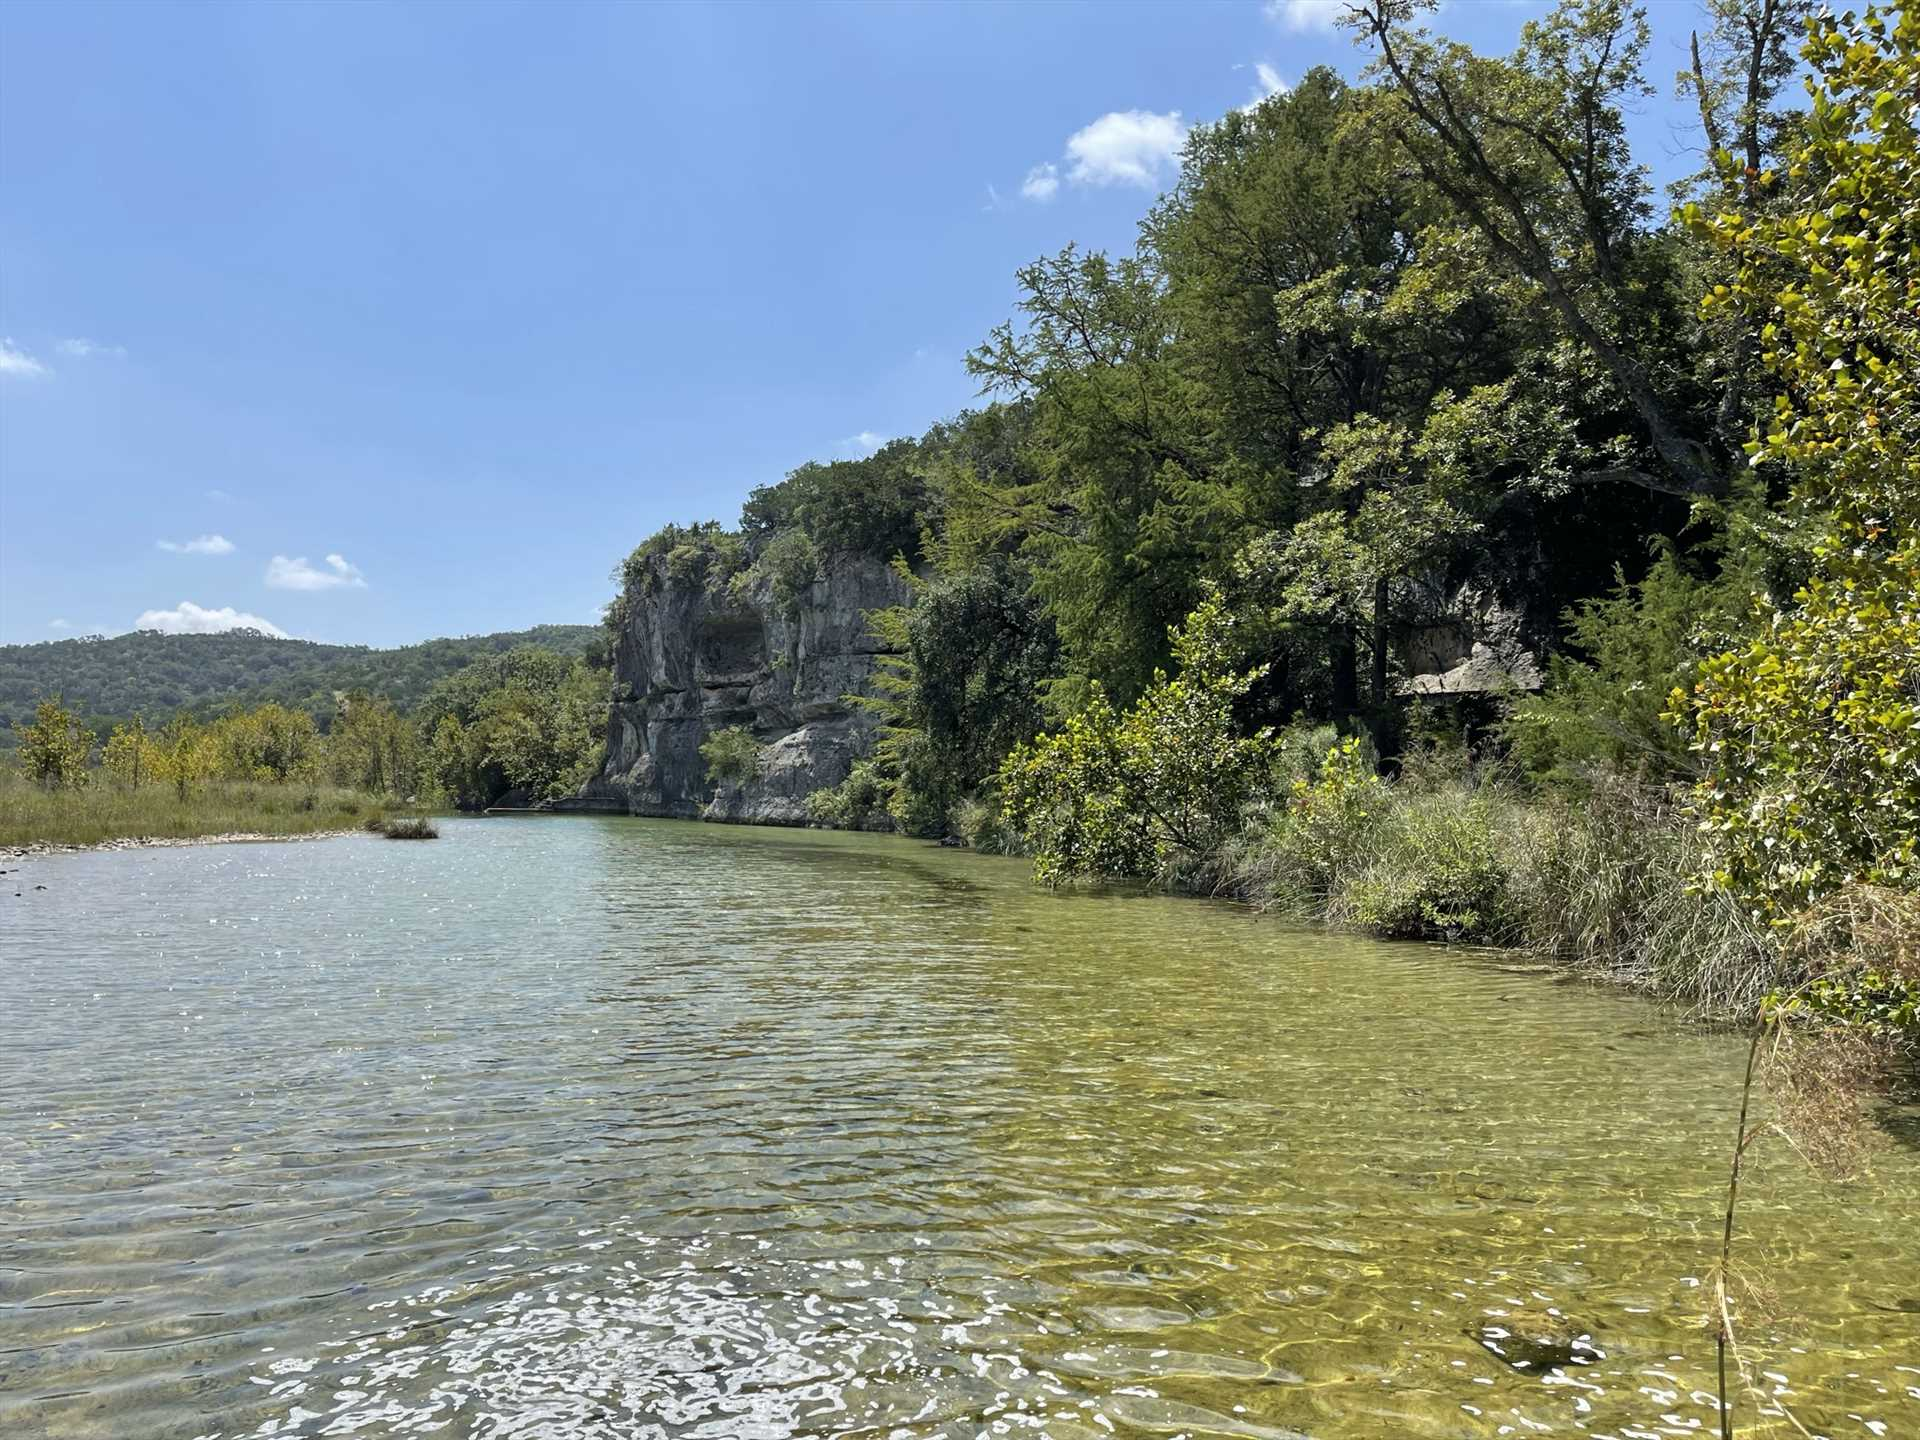 Cool off on those hot Texas days in the swimming hole out back, created especially for the enjoyment of our guests!